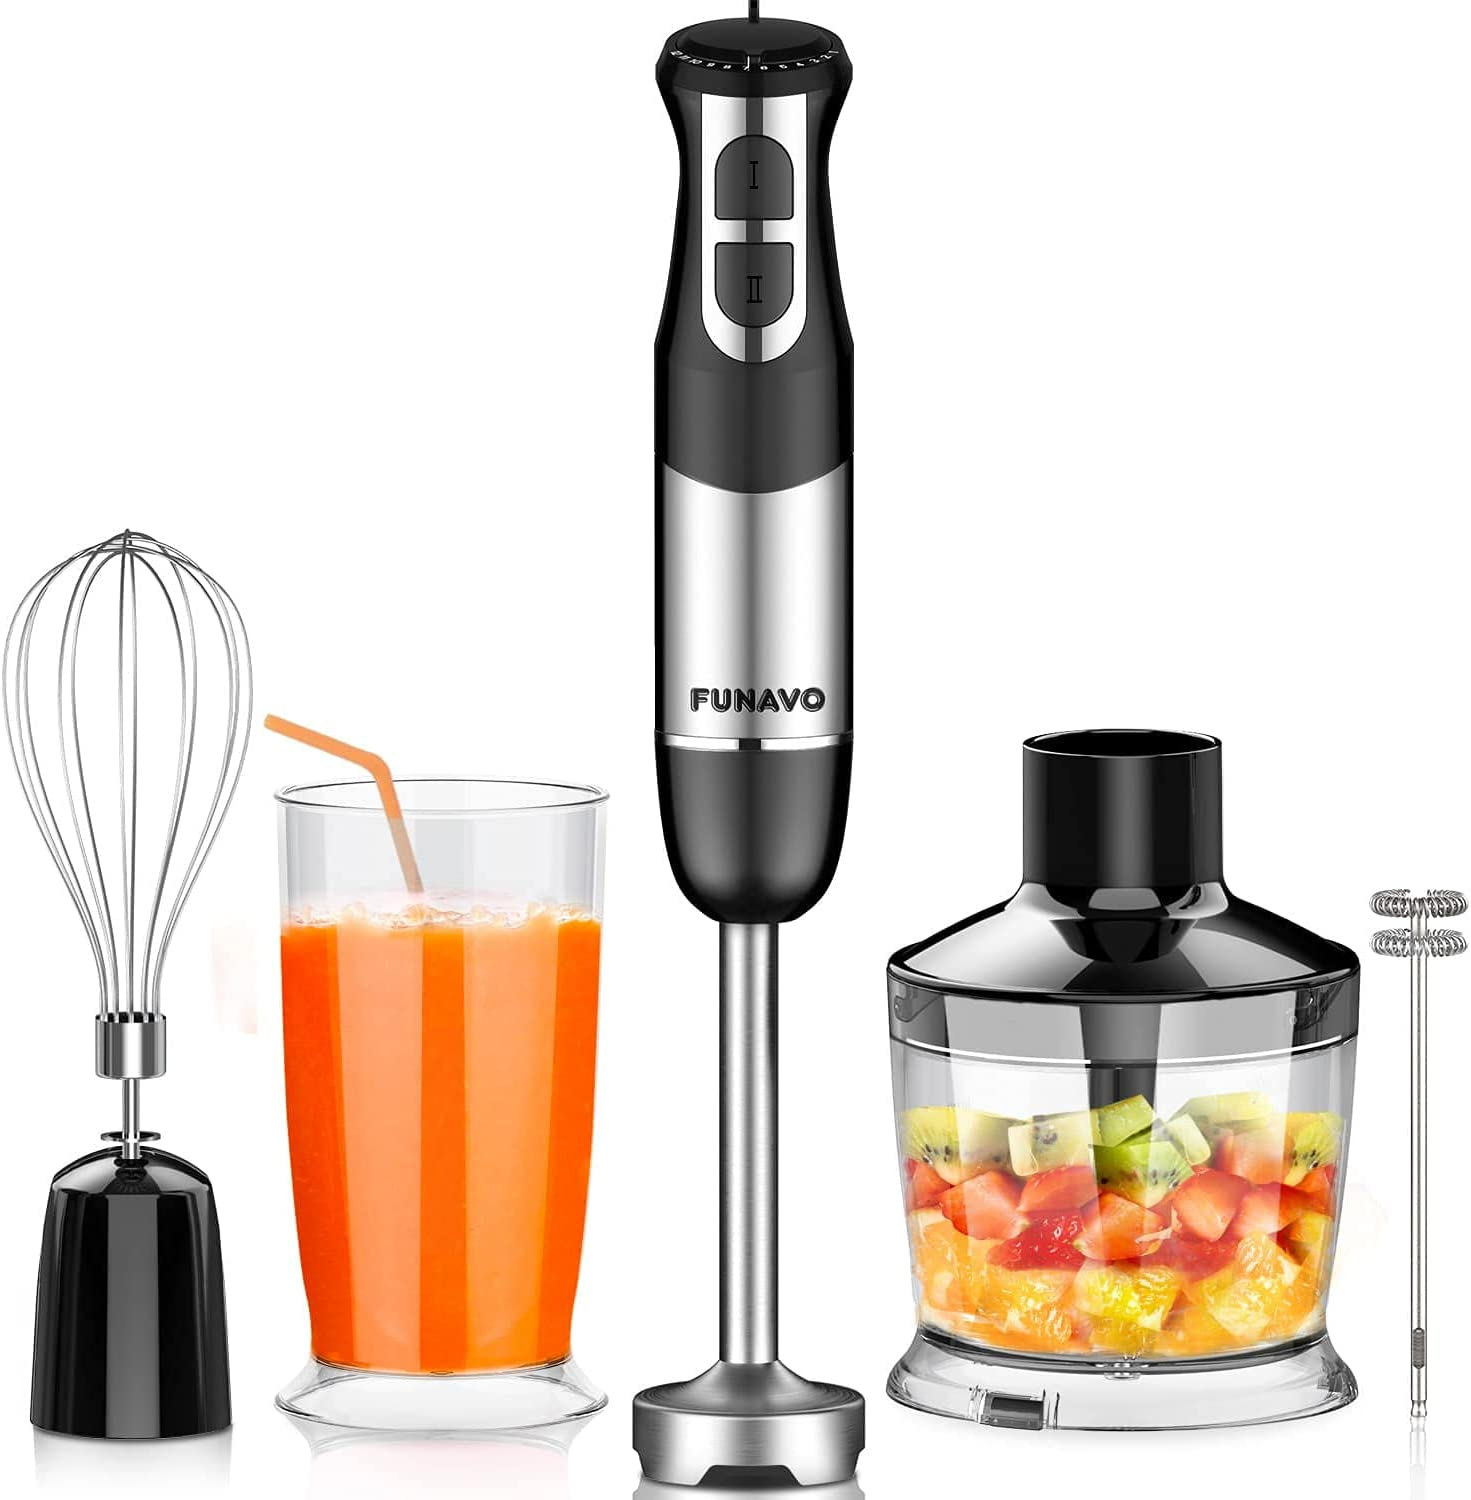 FUNAVO hand blender,800W 5-in-1 Immersion Hand Blender,12-Speed Multi-function Stick Blender with 500ml Chopping Bowl, Whisk, 600ml Mixing Beaker, Milk Frother Attachments, BPA-Free